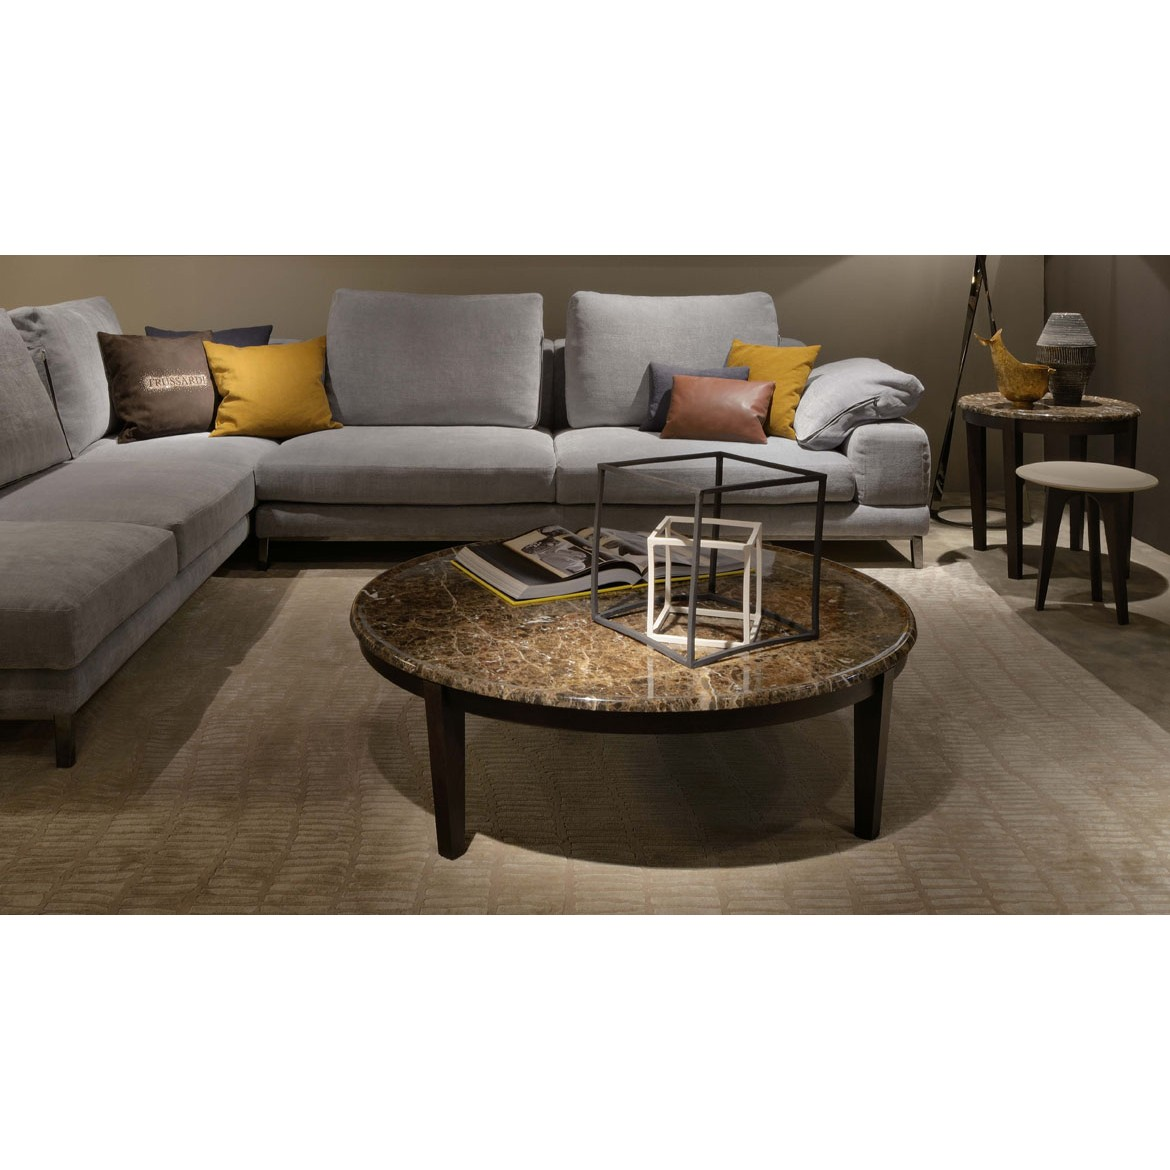 Стол журнальный Inc 414 Coffee and Side Tables 2, дизайн Trussardi Casa